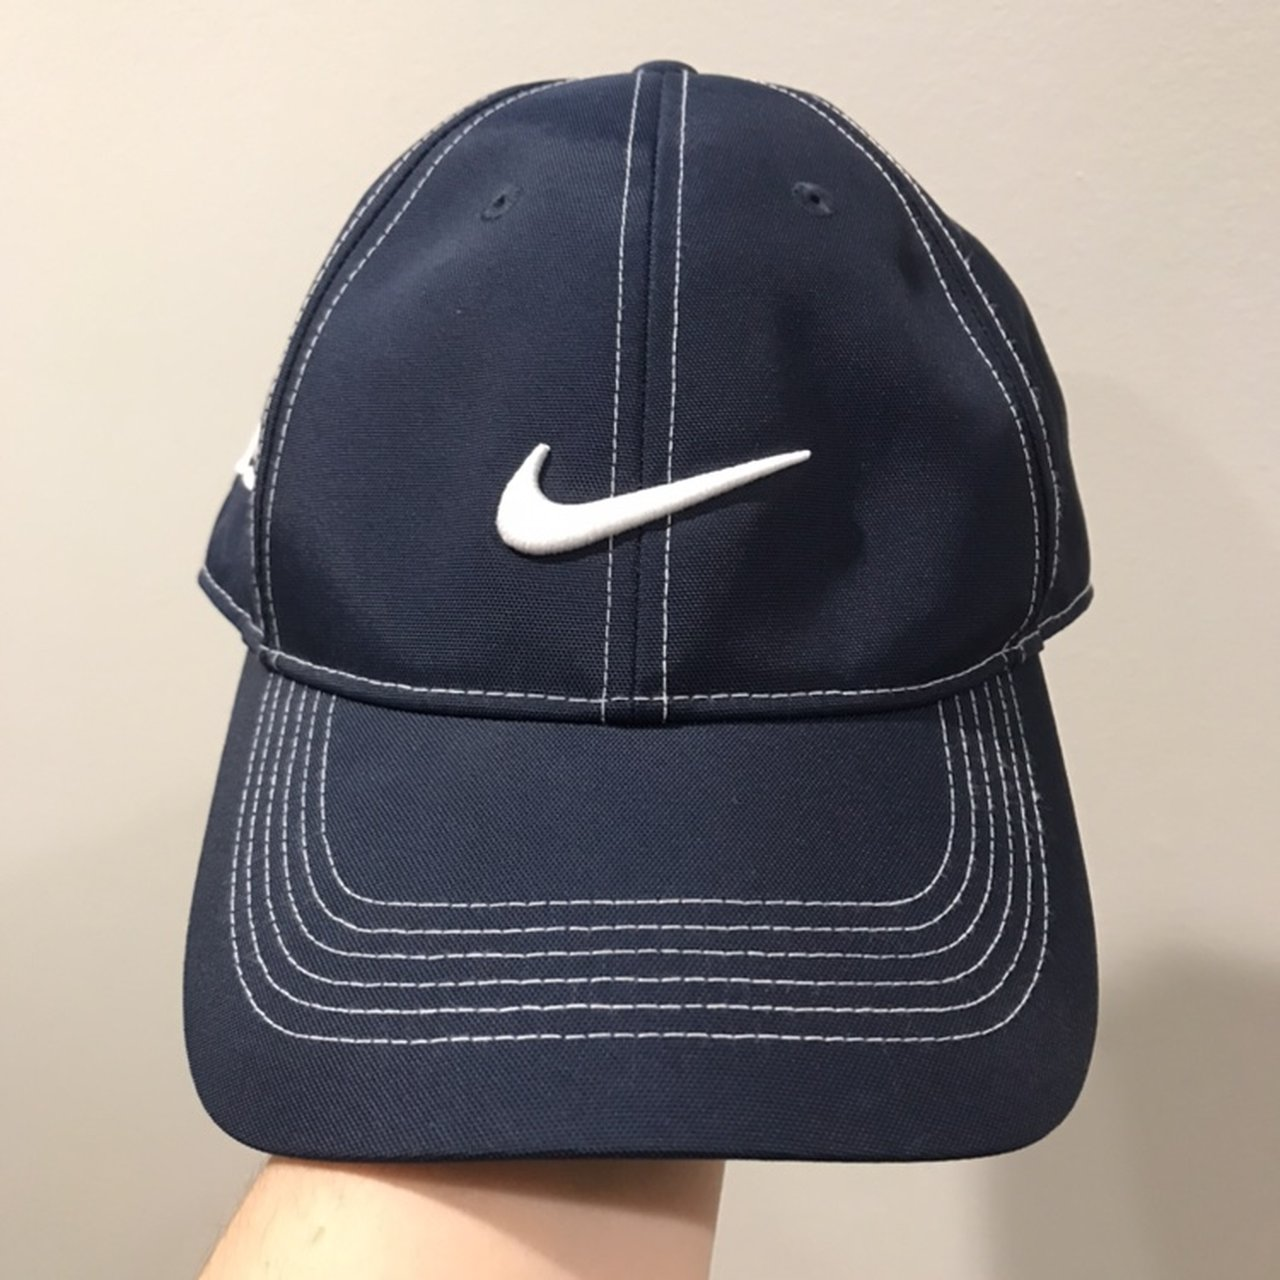 navy blue nike hat tags  brandy melville urban outfitters - Depop 41aef4f35ec